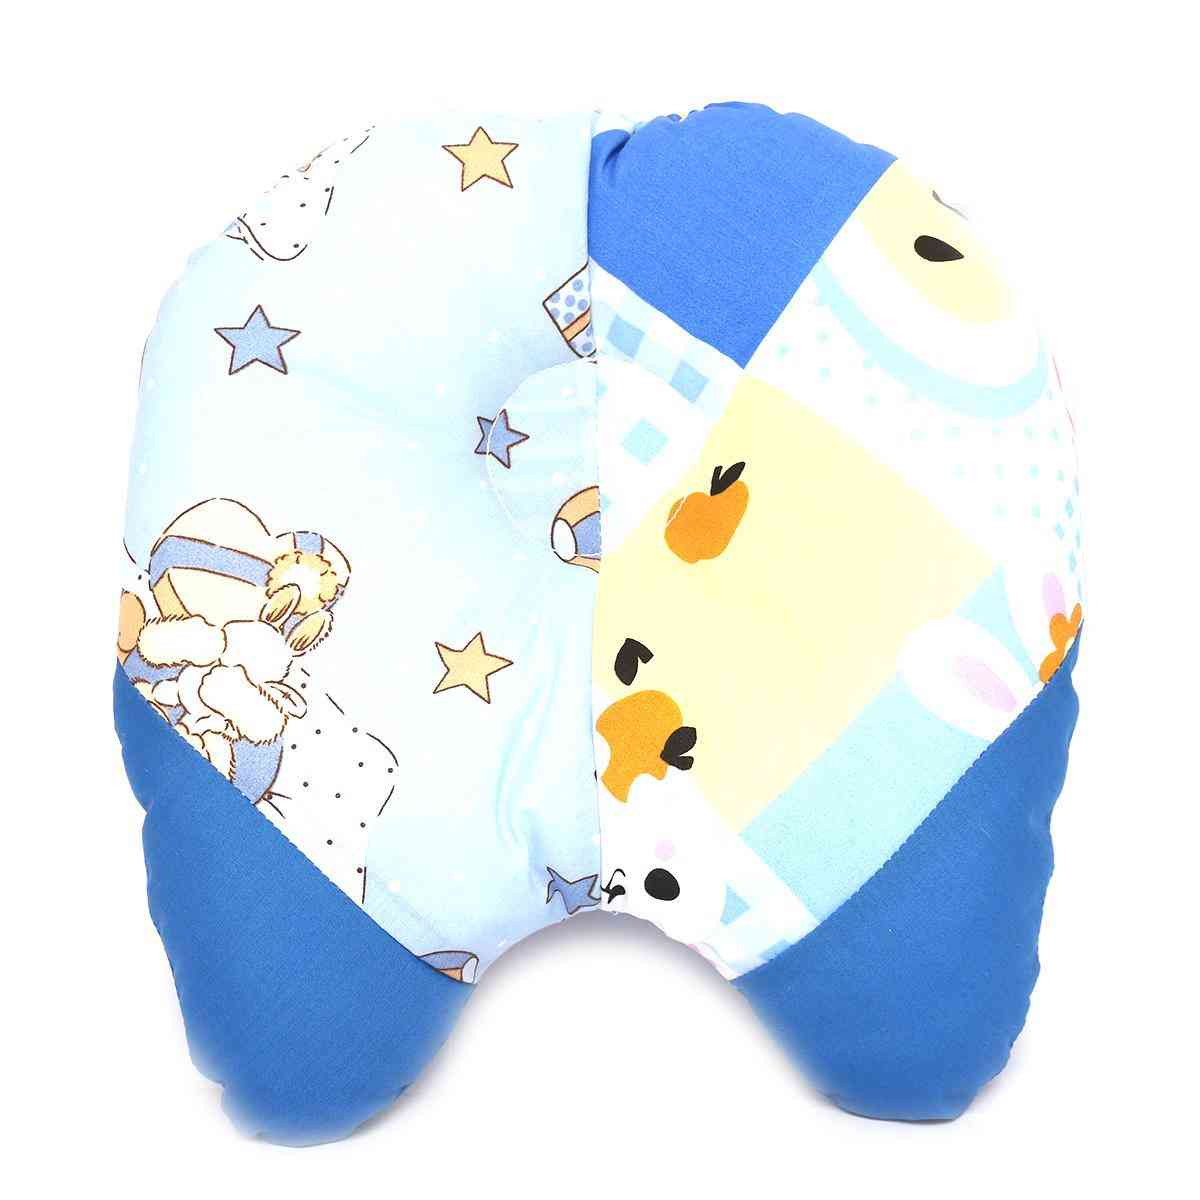 Soft and Comfortable Pillow for Newborn Babies 9x9 Inch  Blue